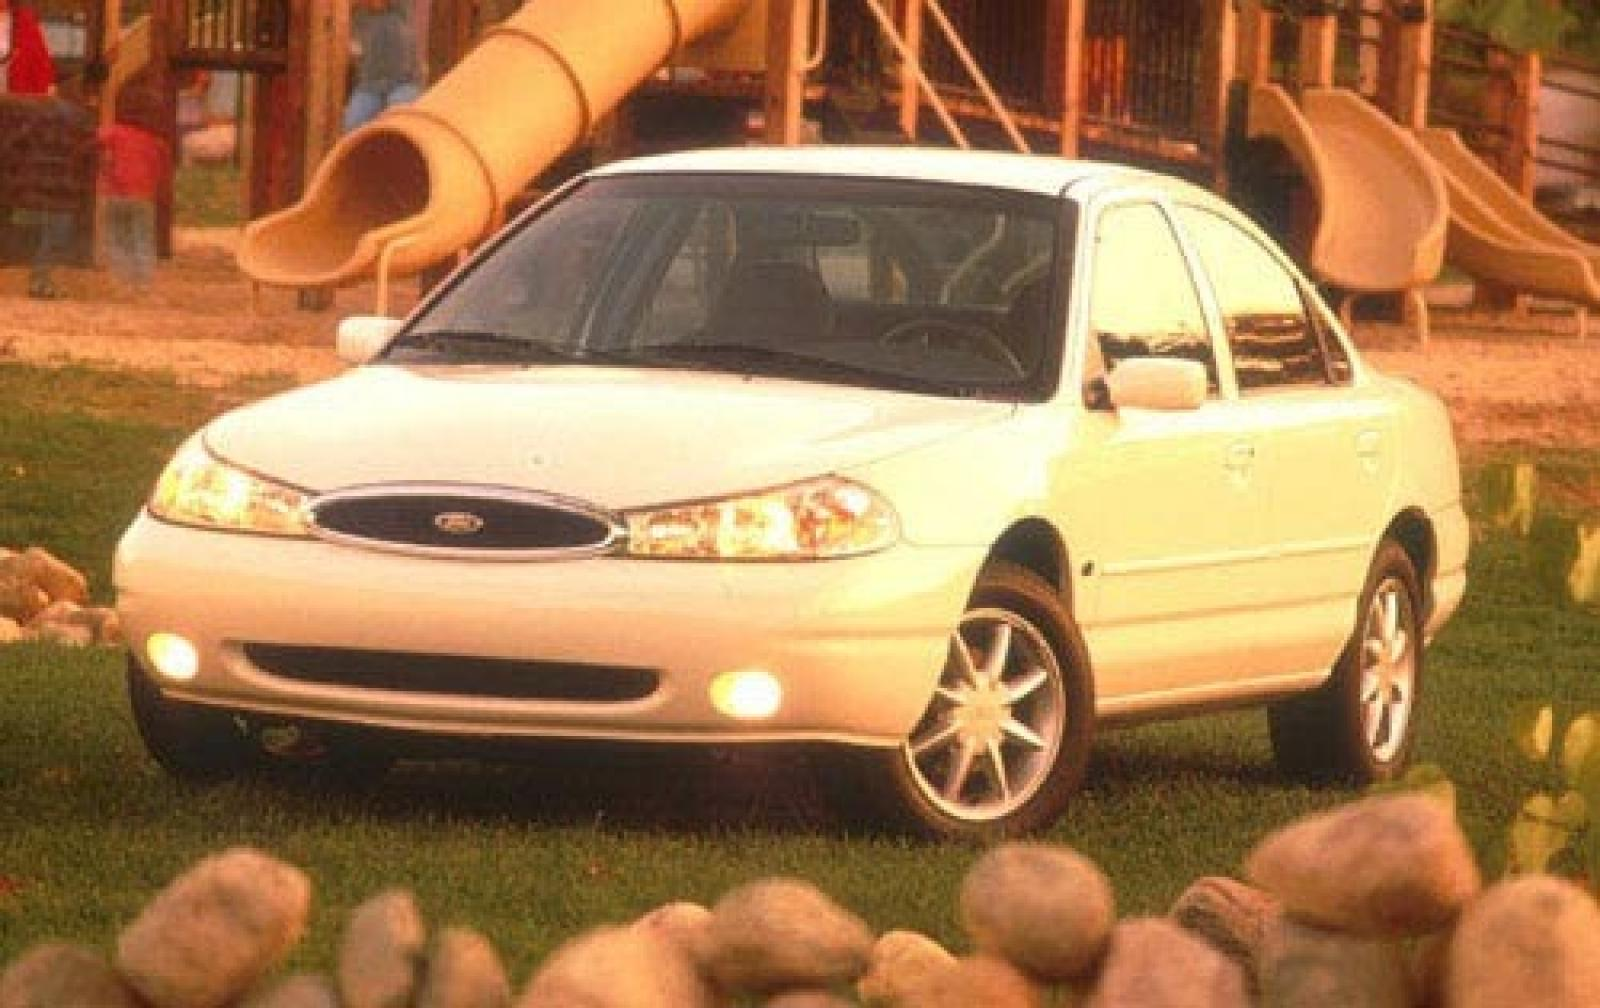 1999 ford contour information and photos zombiedrive. Black Bedroom Furniture Sets. Home Design Ideas